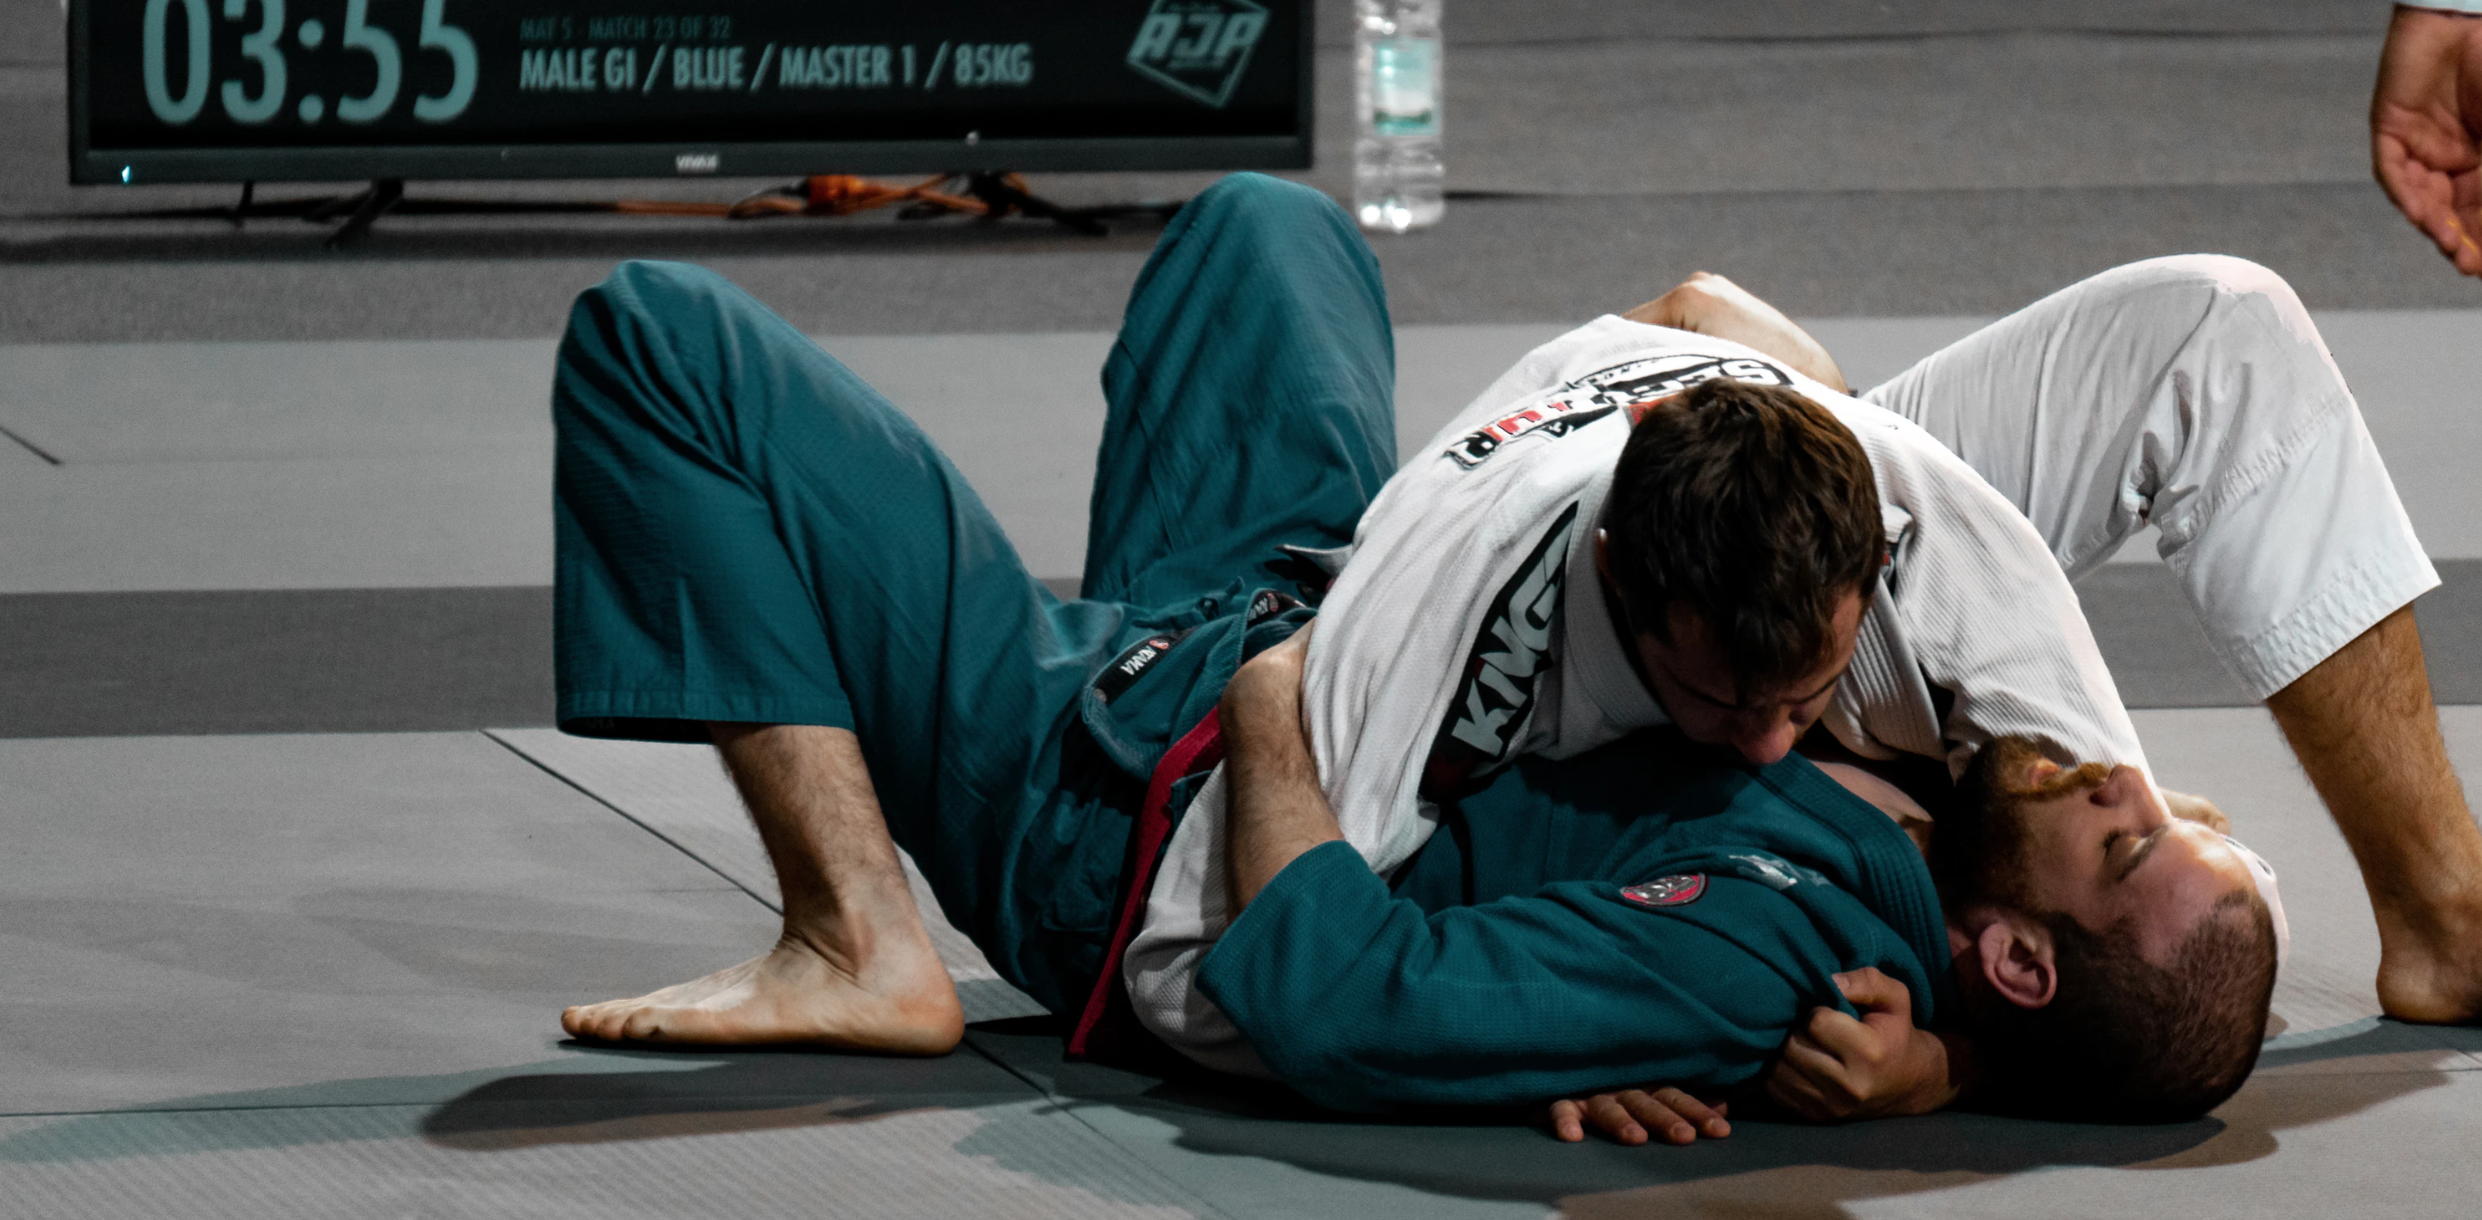 Two Judokas performing the grappling exchanges on the mat